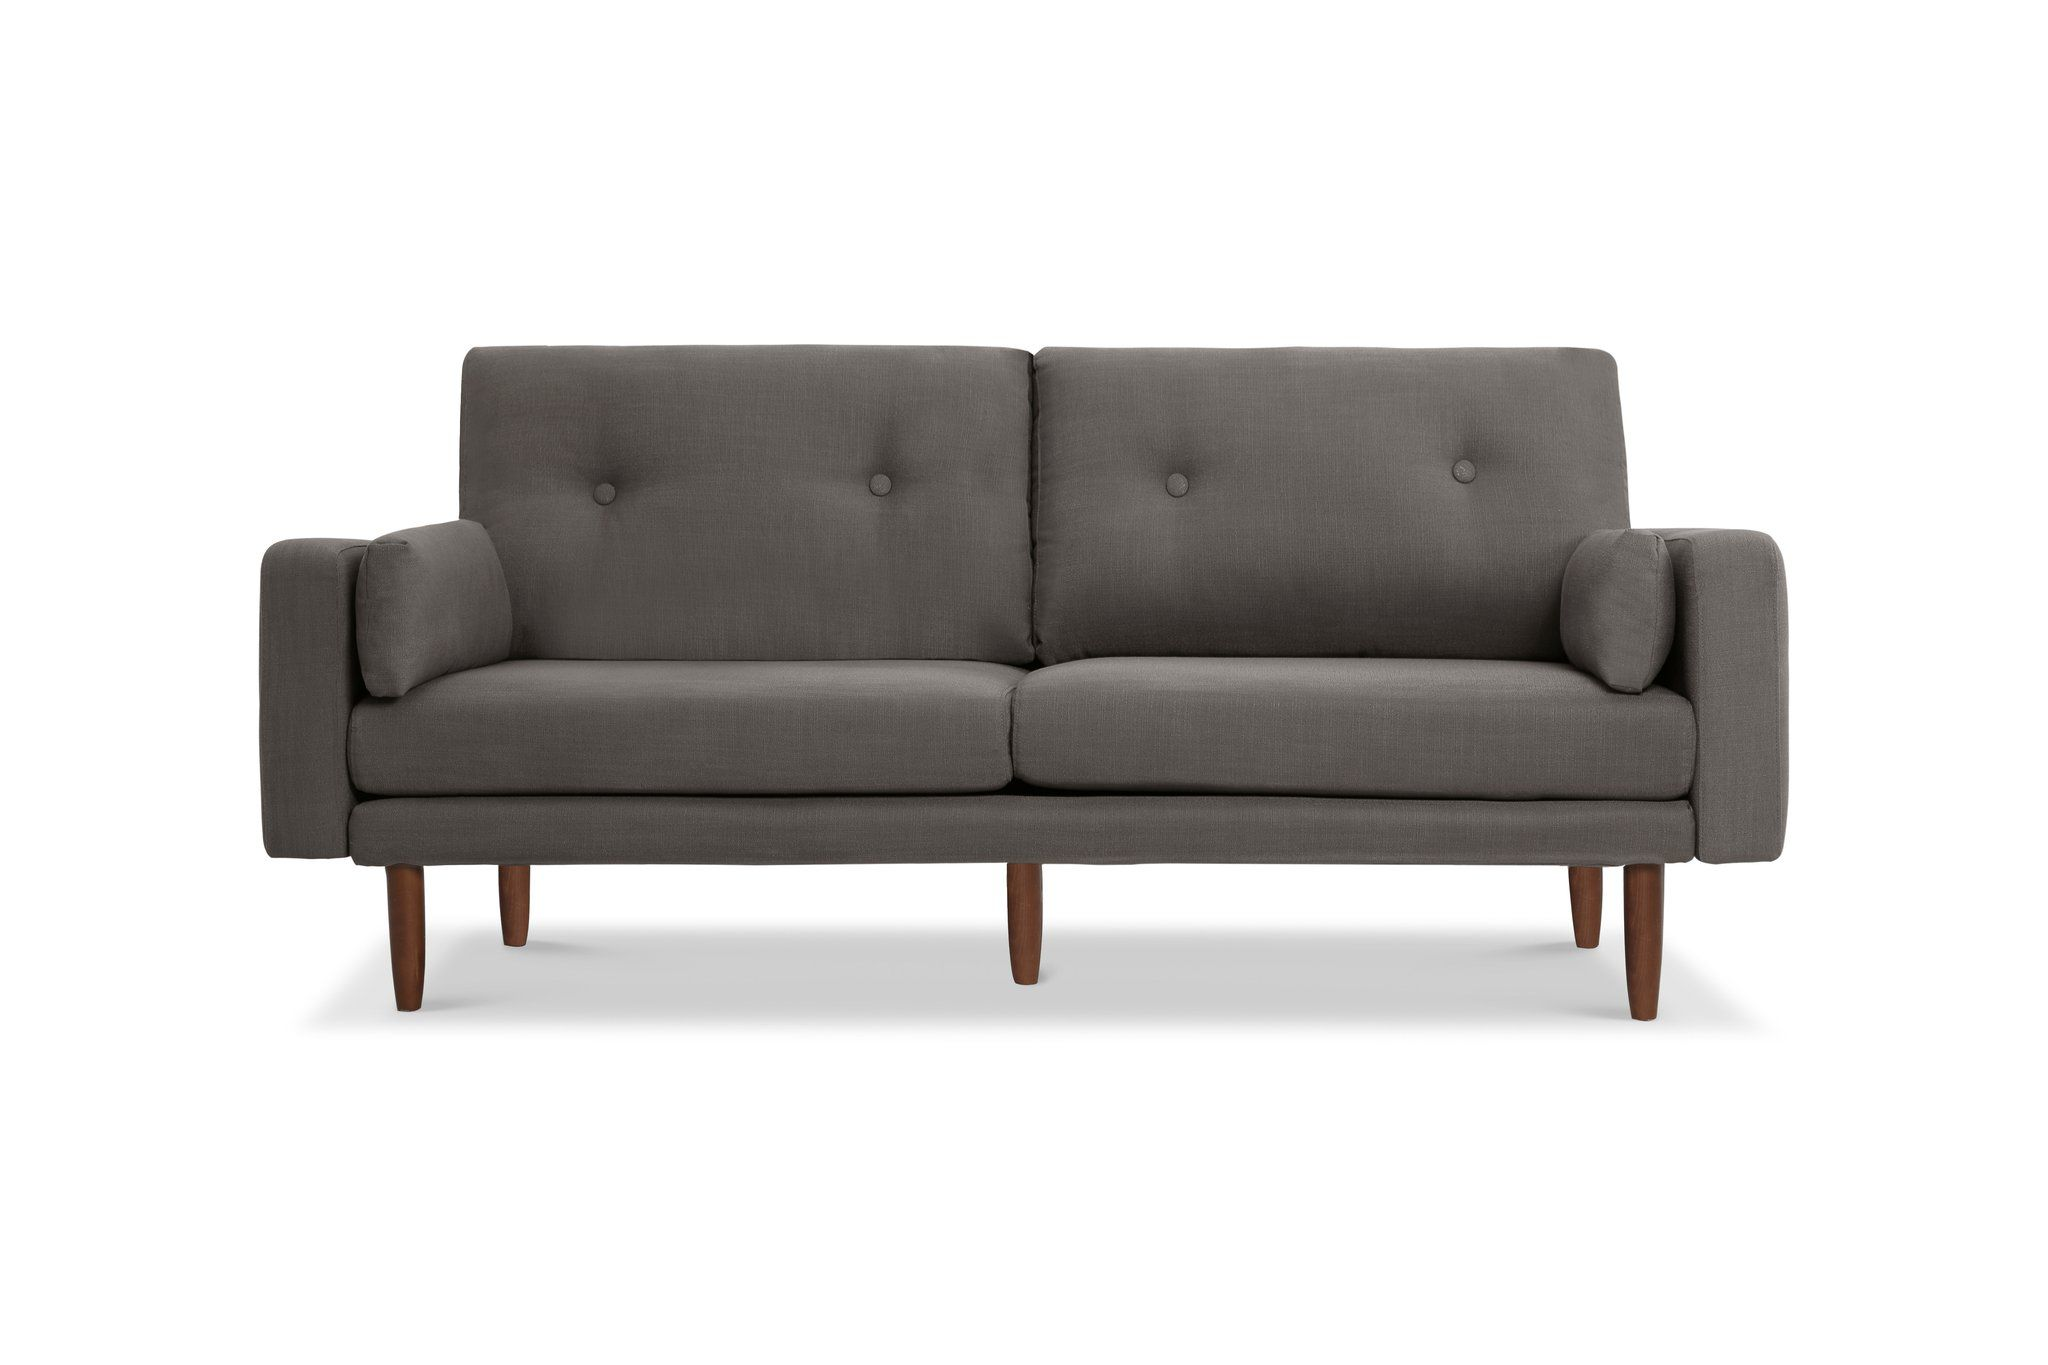 Brentwood Mid Century Sofa With USB Ports